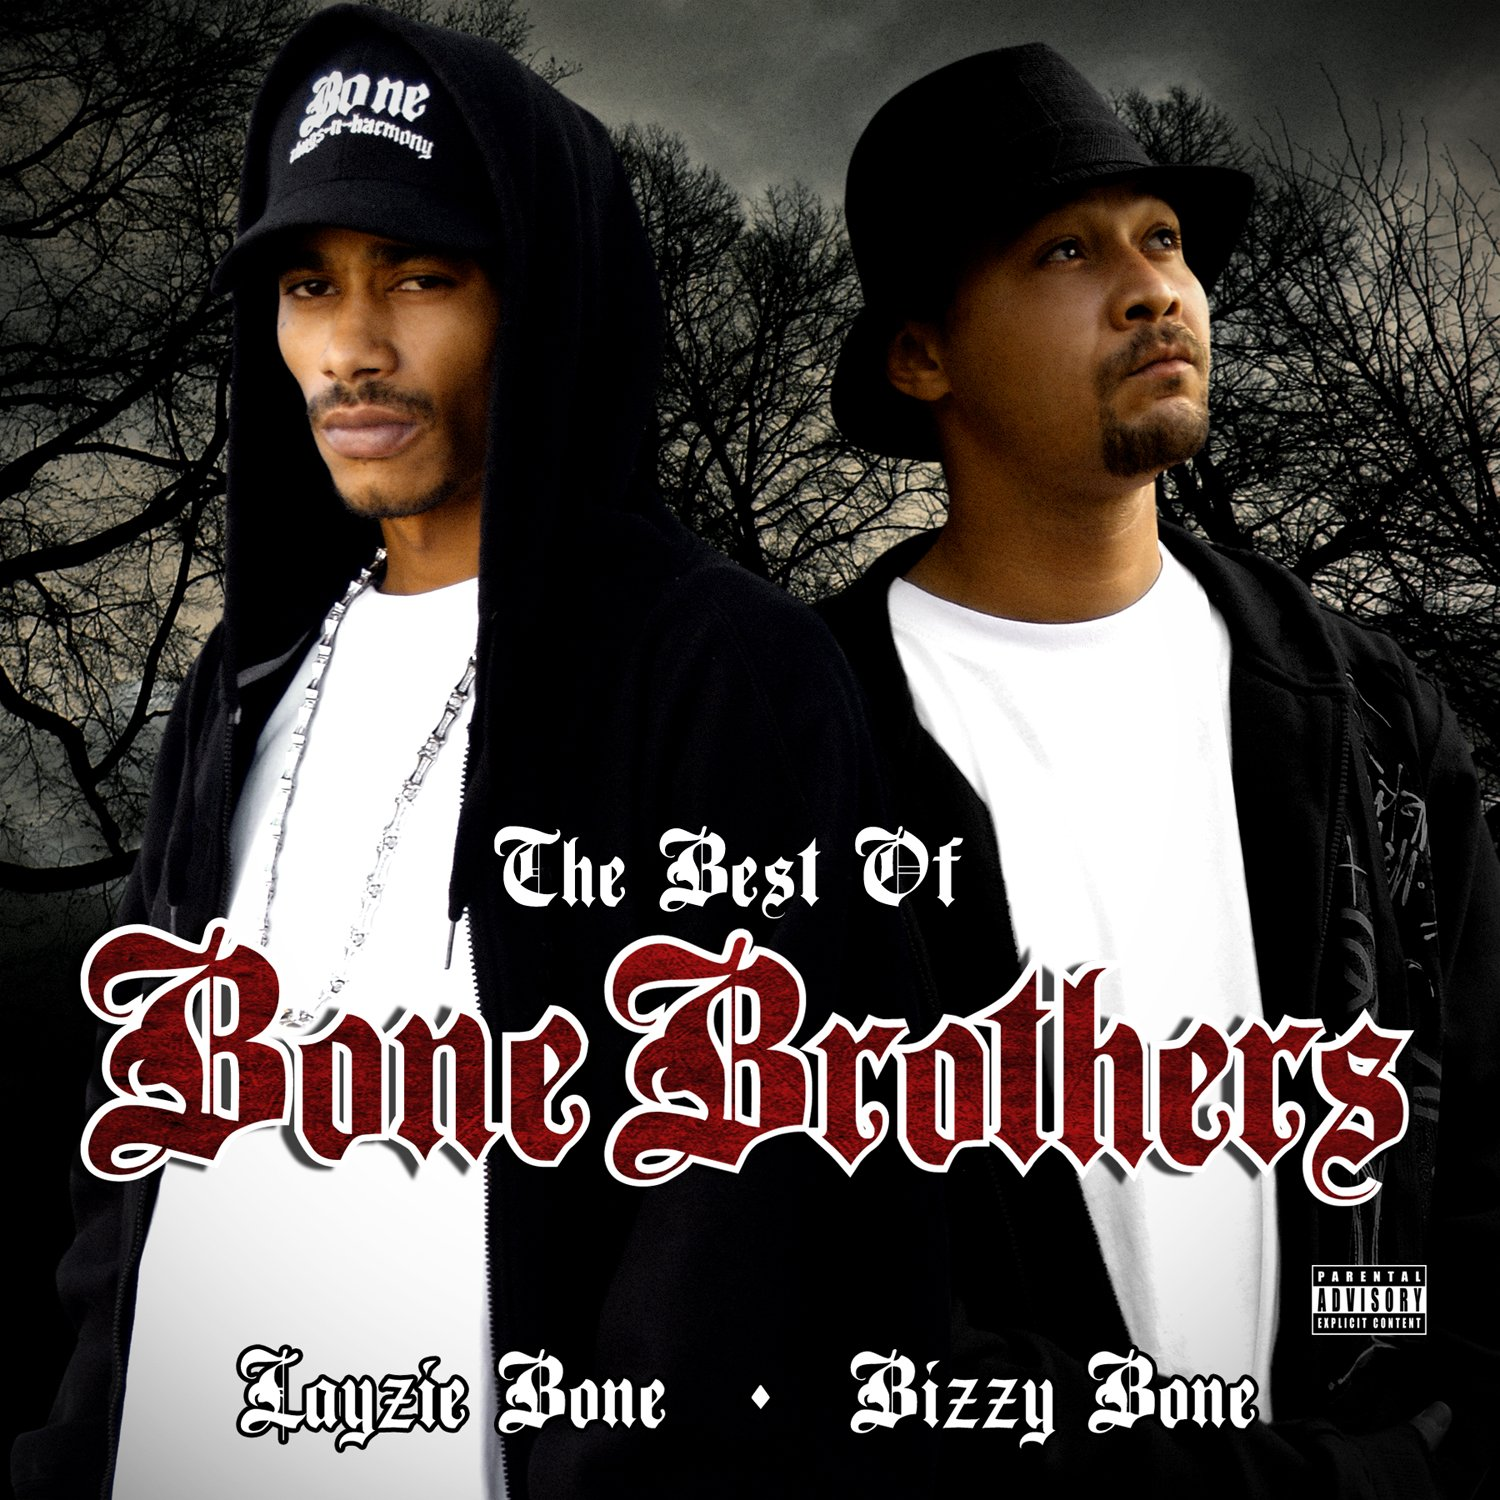 Best of Bone Brothers                                                                                                                                                                                                                                                    <span class=